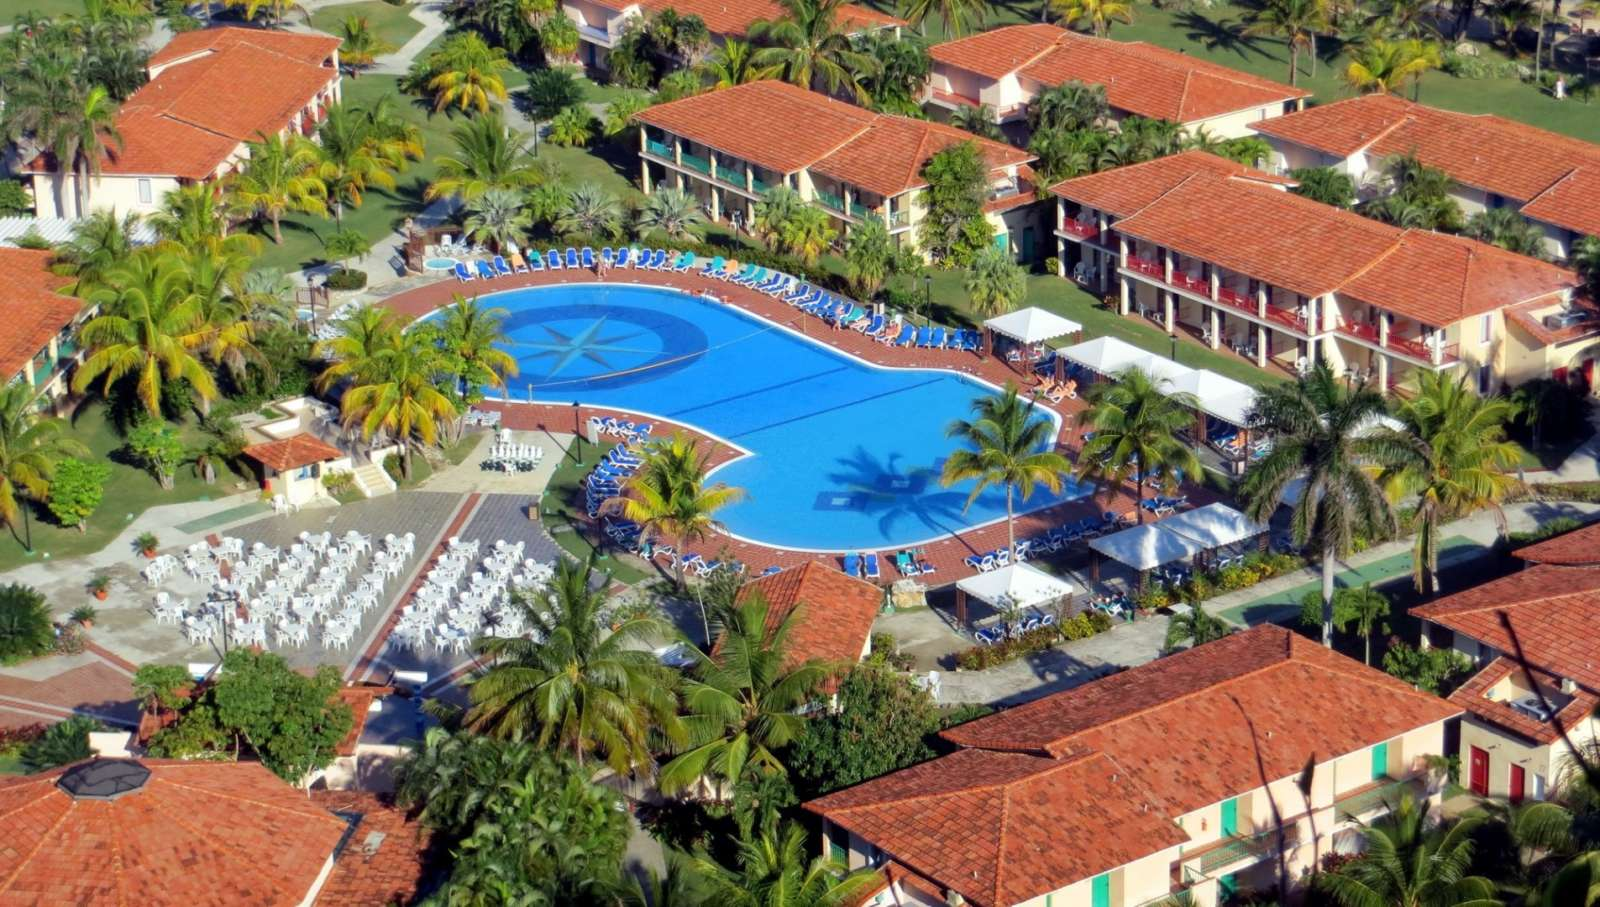 Aerial view of Memories Jibacoa pool